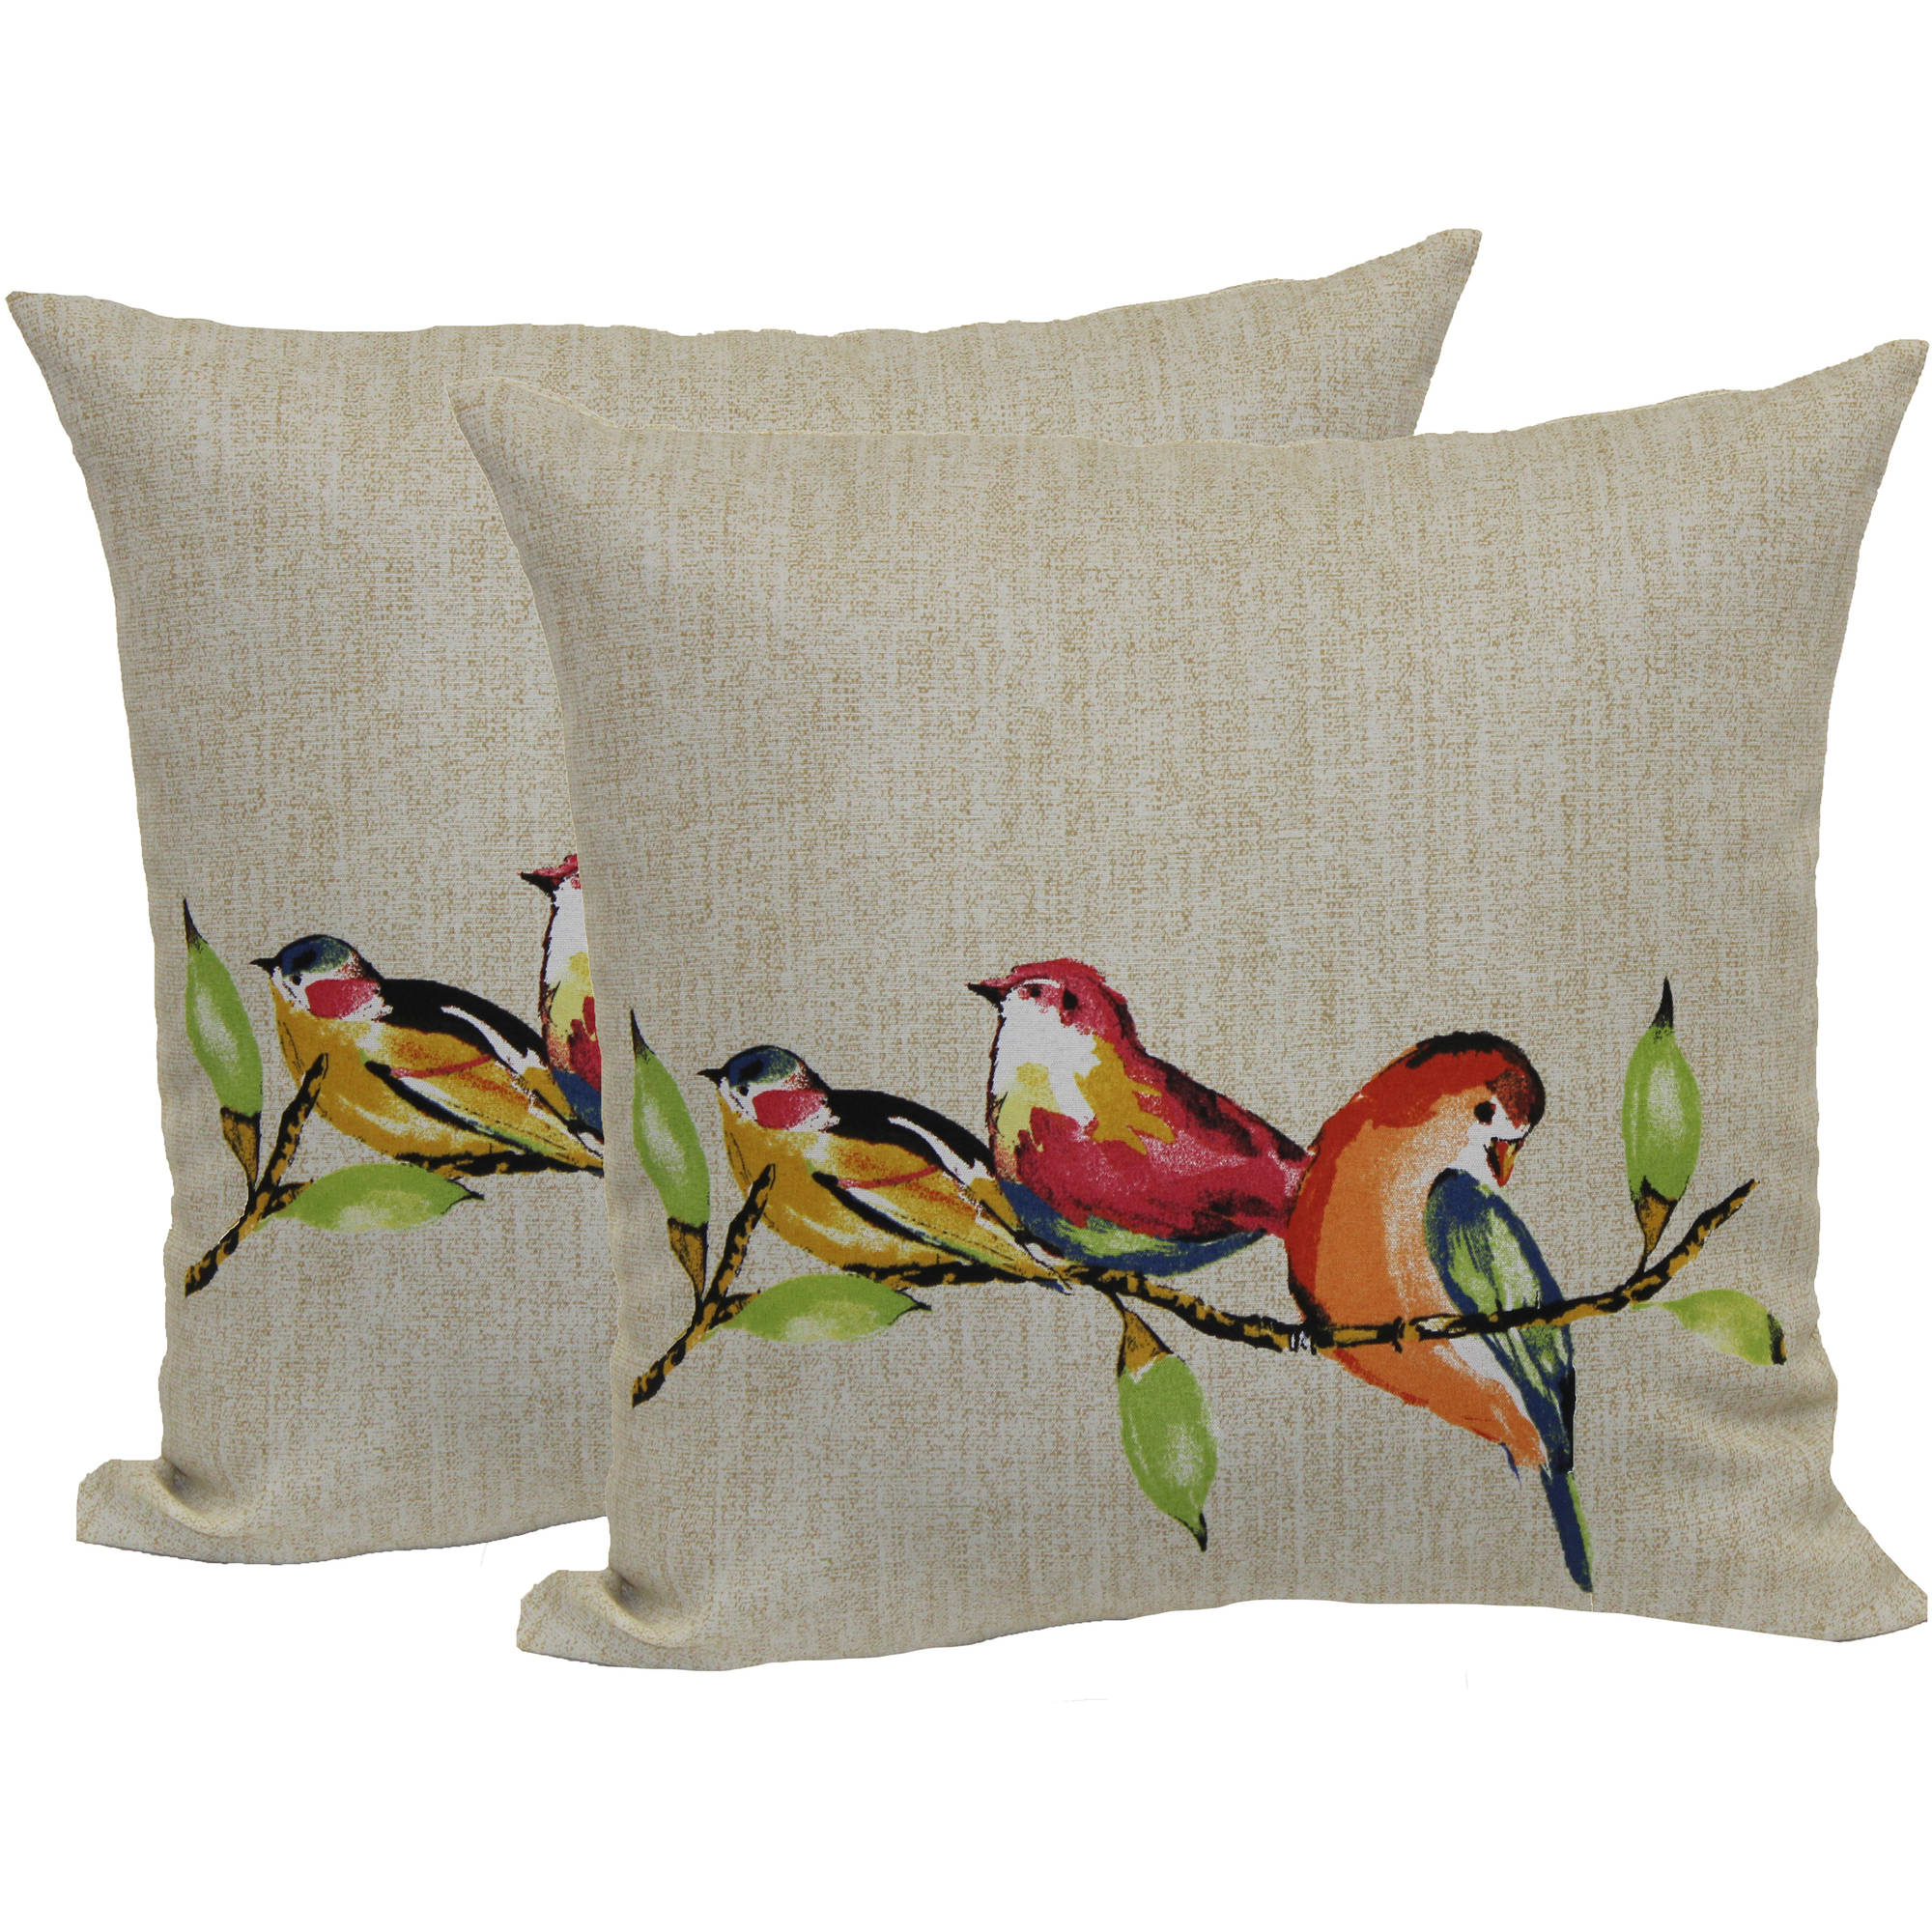 Mainstays Painted Birds Toss Pillow, 2-Pack by Brentwood Originals